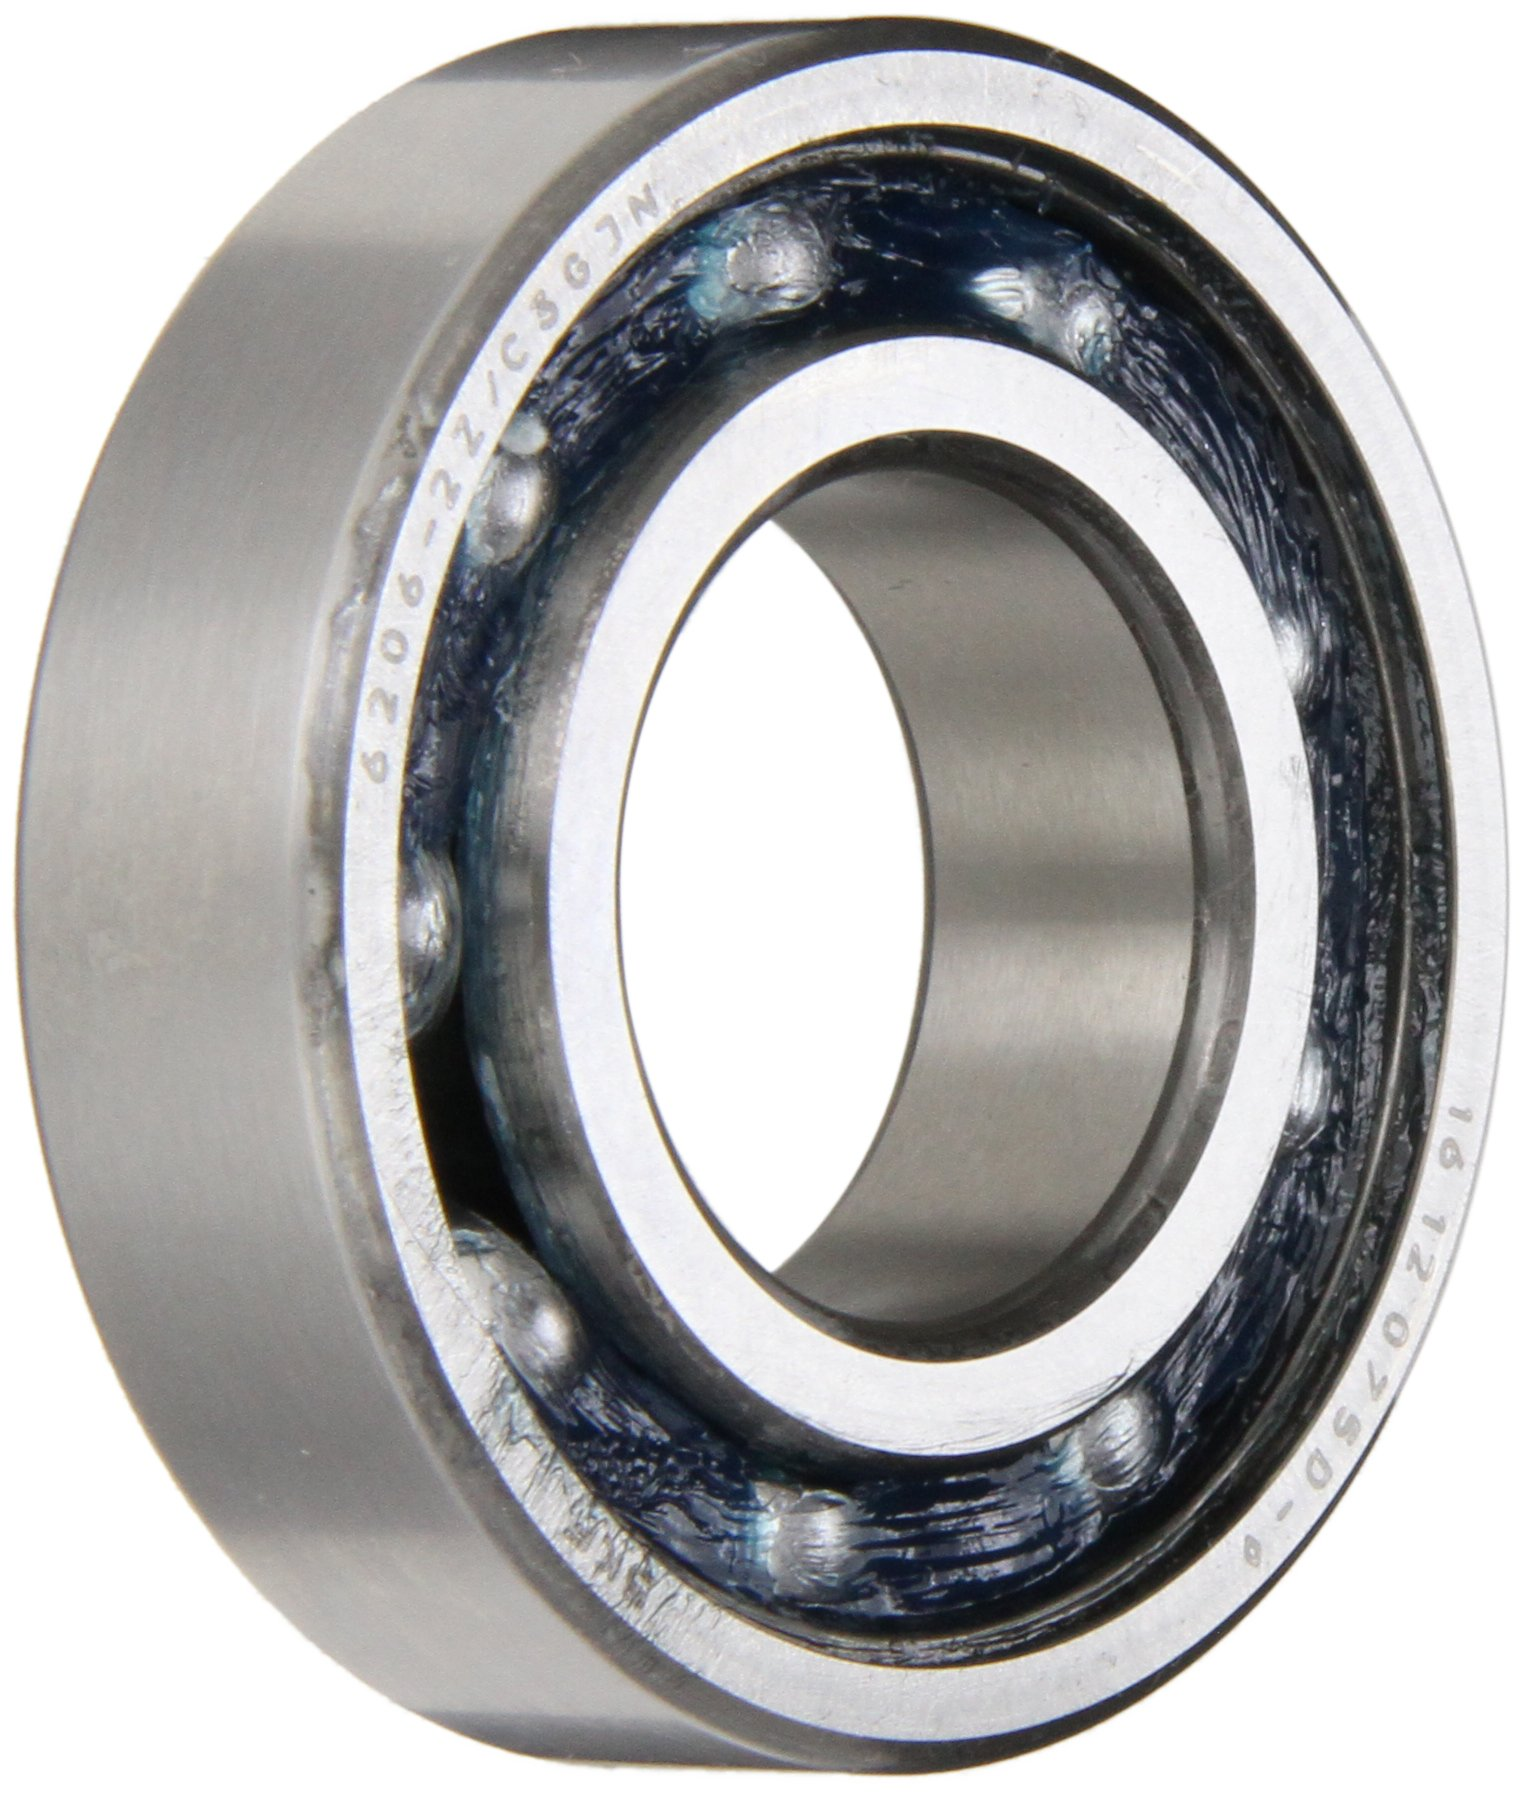 SKF 6202-ZTN9 Radial Bearing, Single Row, Deep Groove Design, ABEC 1 Precision, Single Shield, Non-Contact, Normal Clearance, Plastic Cage, 15mm Bore, 35mm OD, 11mm Width